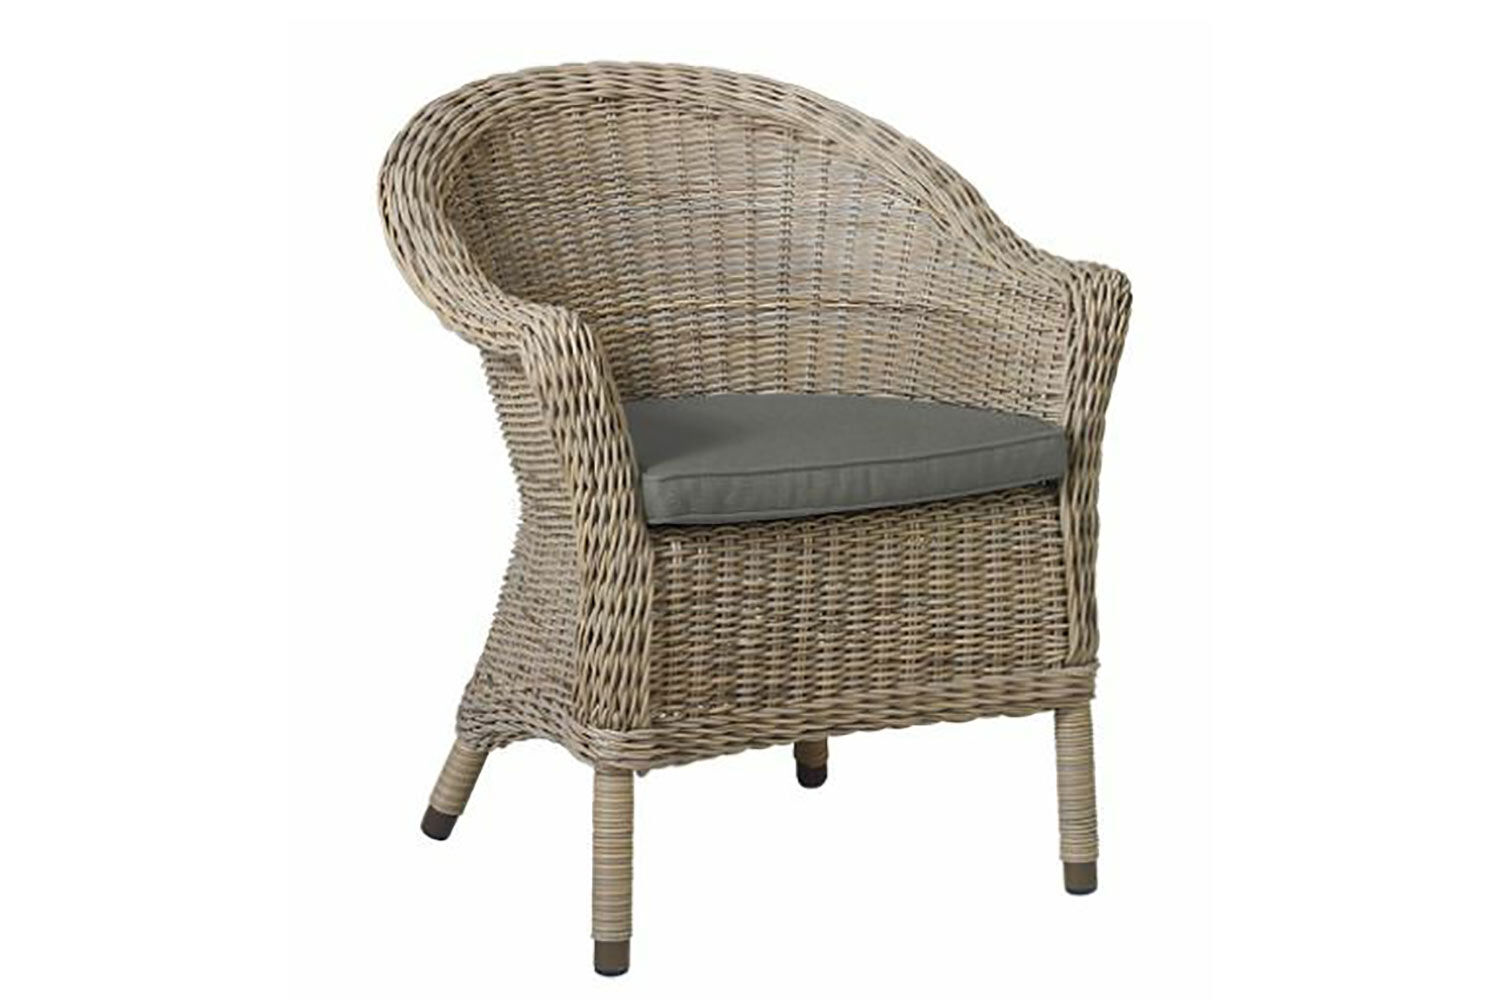 4 Seasons Outdoor Chester dining chair with cushion